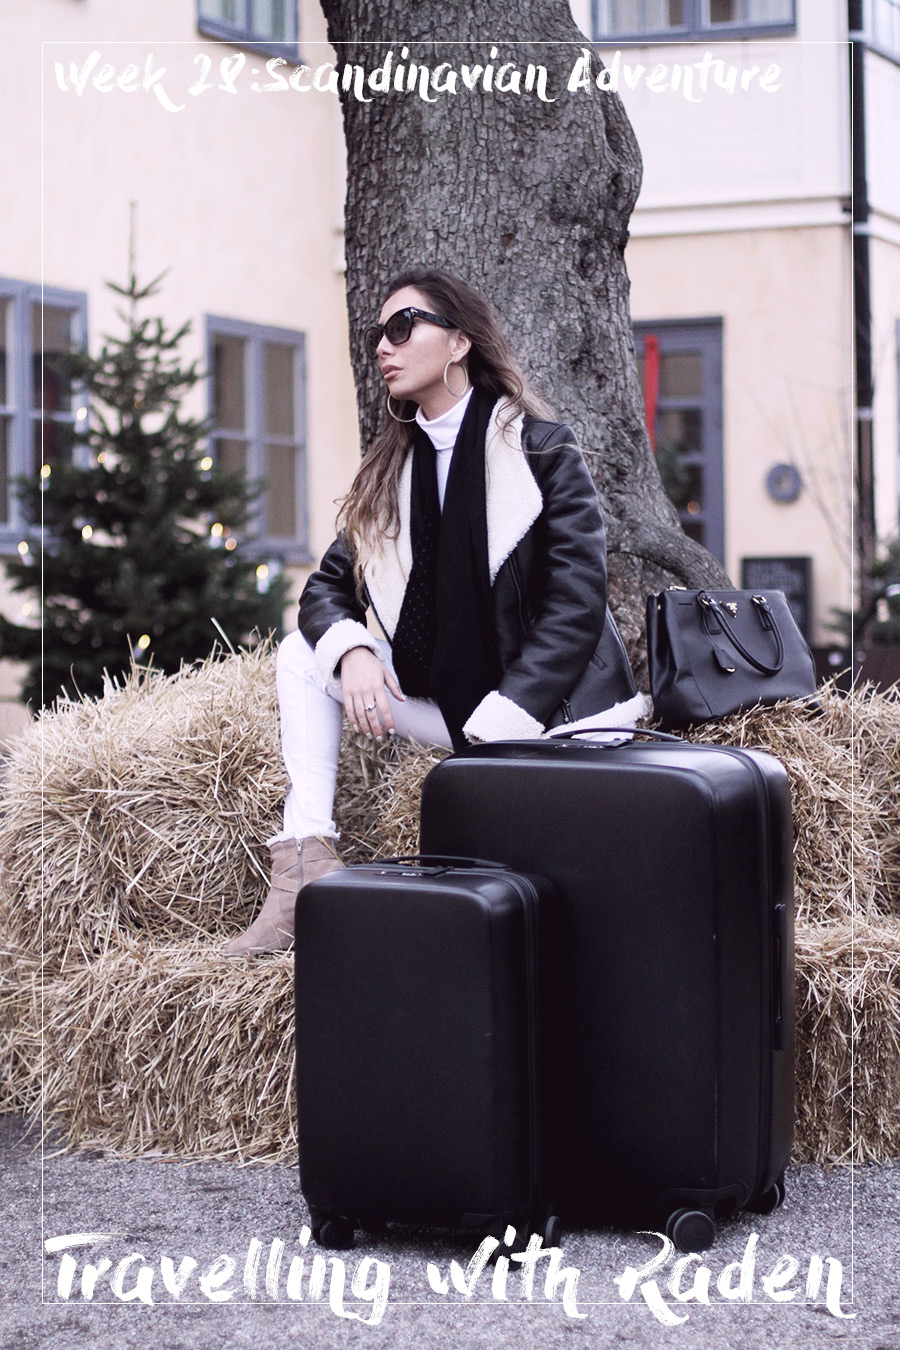 Raden luggage review by blogger. Stockholm travels.